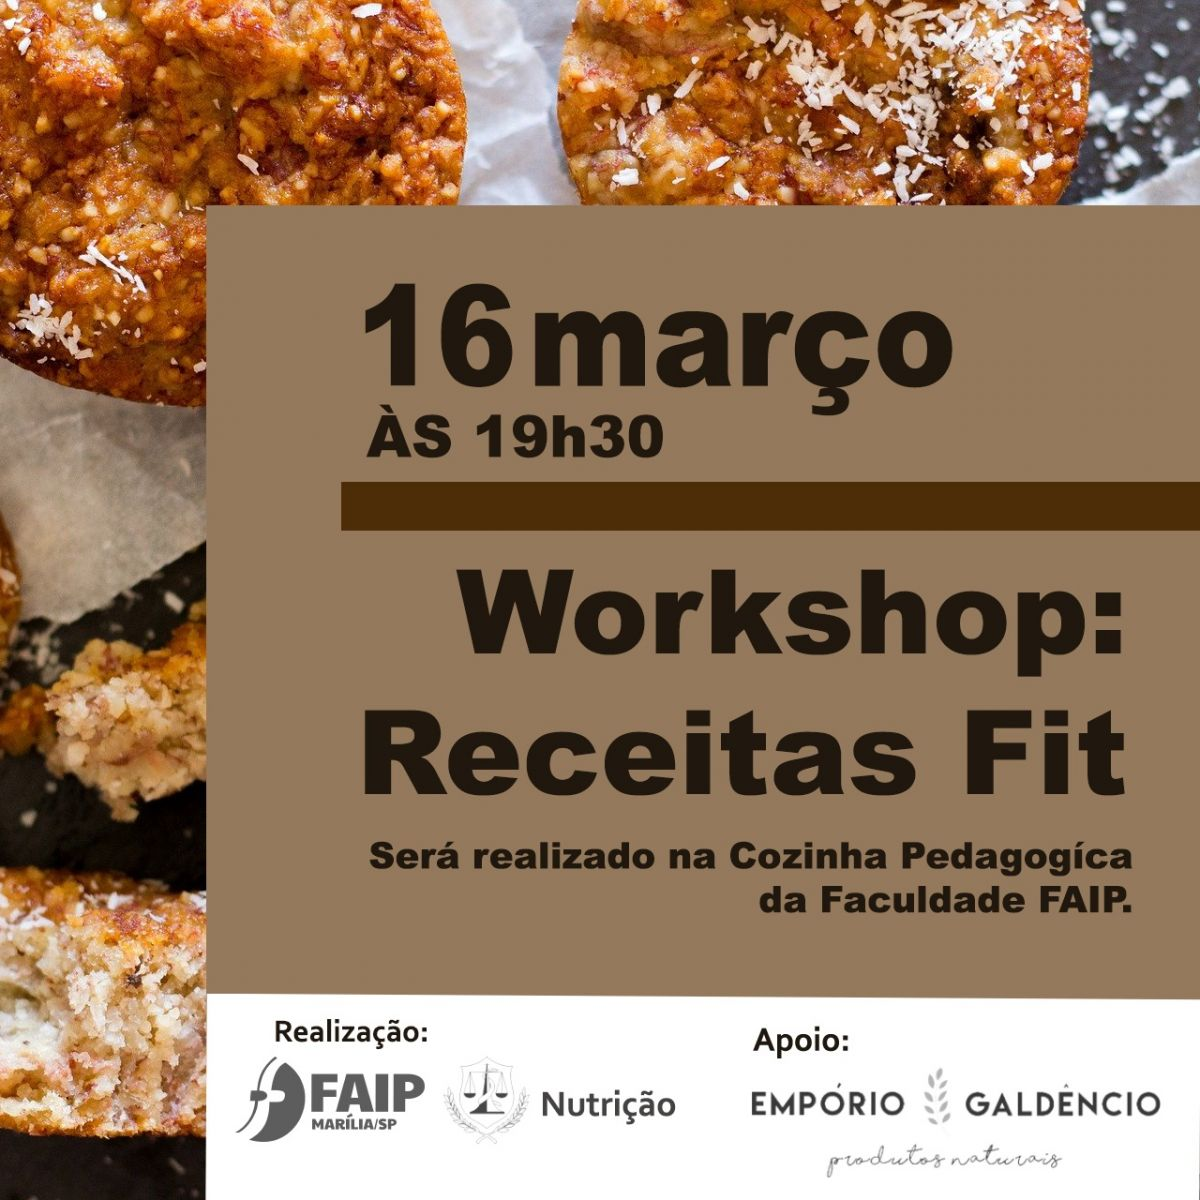 WORKSHOP RECEITAS FIT (1)